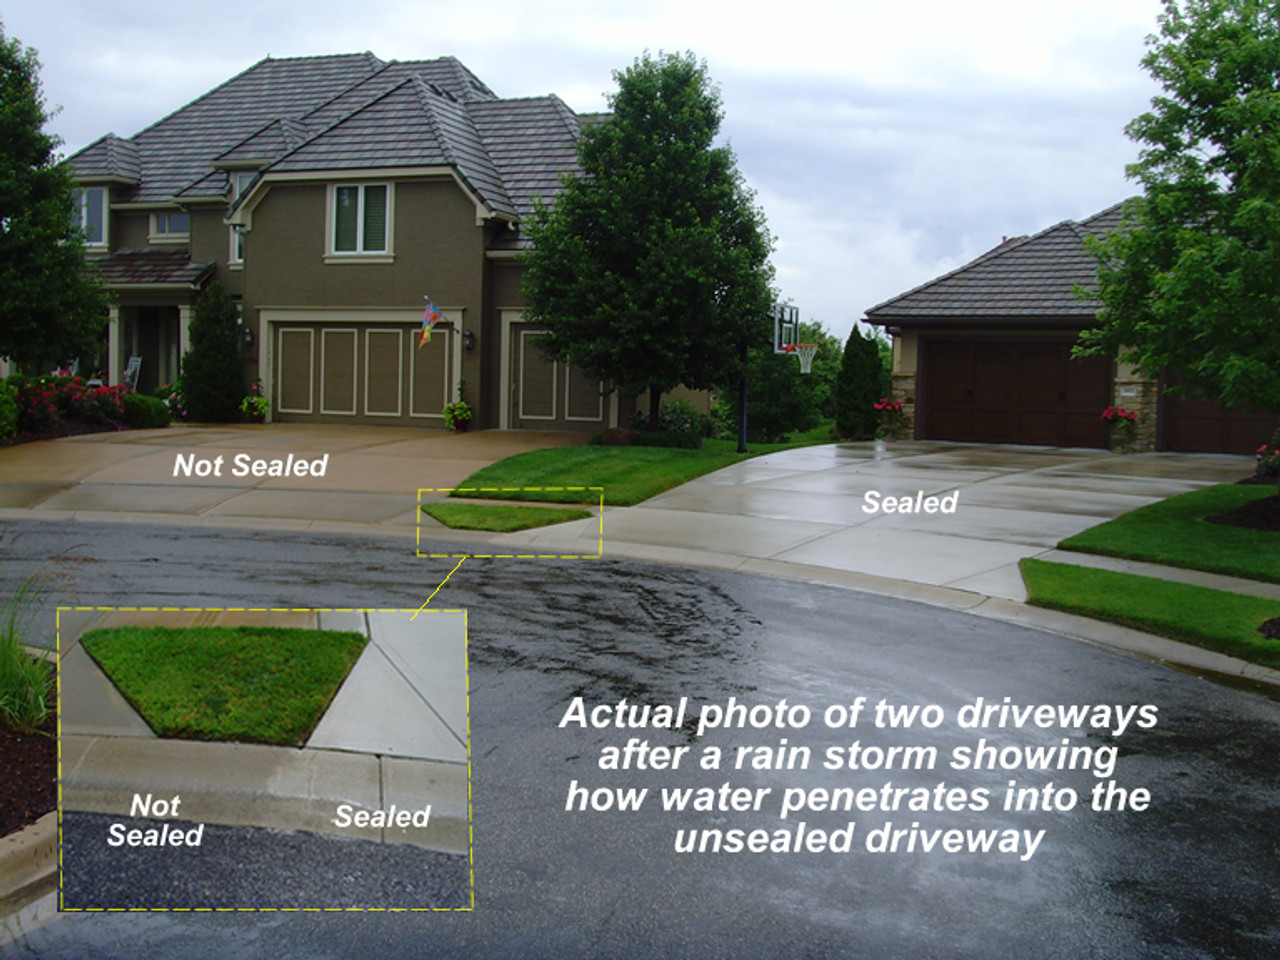 The driveway on the right remains lighter because it is not allowing the water to penetrate